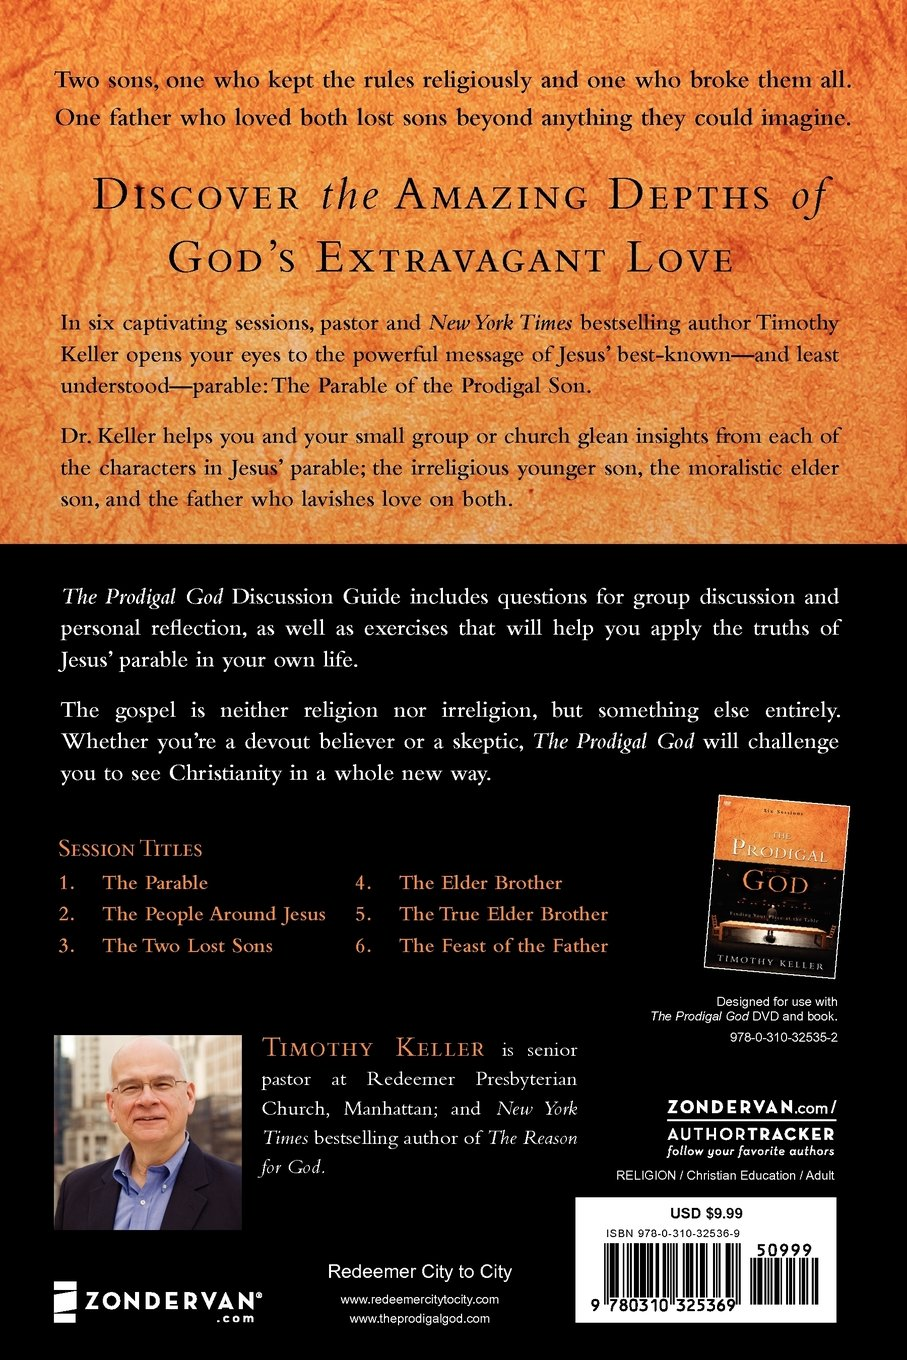 The Prodigal God Discussion Guide: Finding Your Place at the Table: Timothy  Keller: 0025986325367: Amazon.com: Books